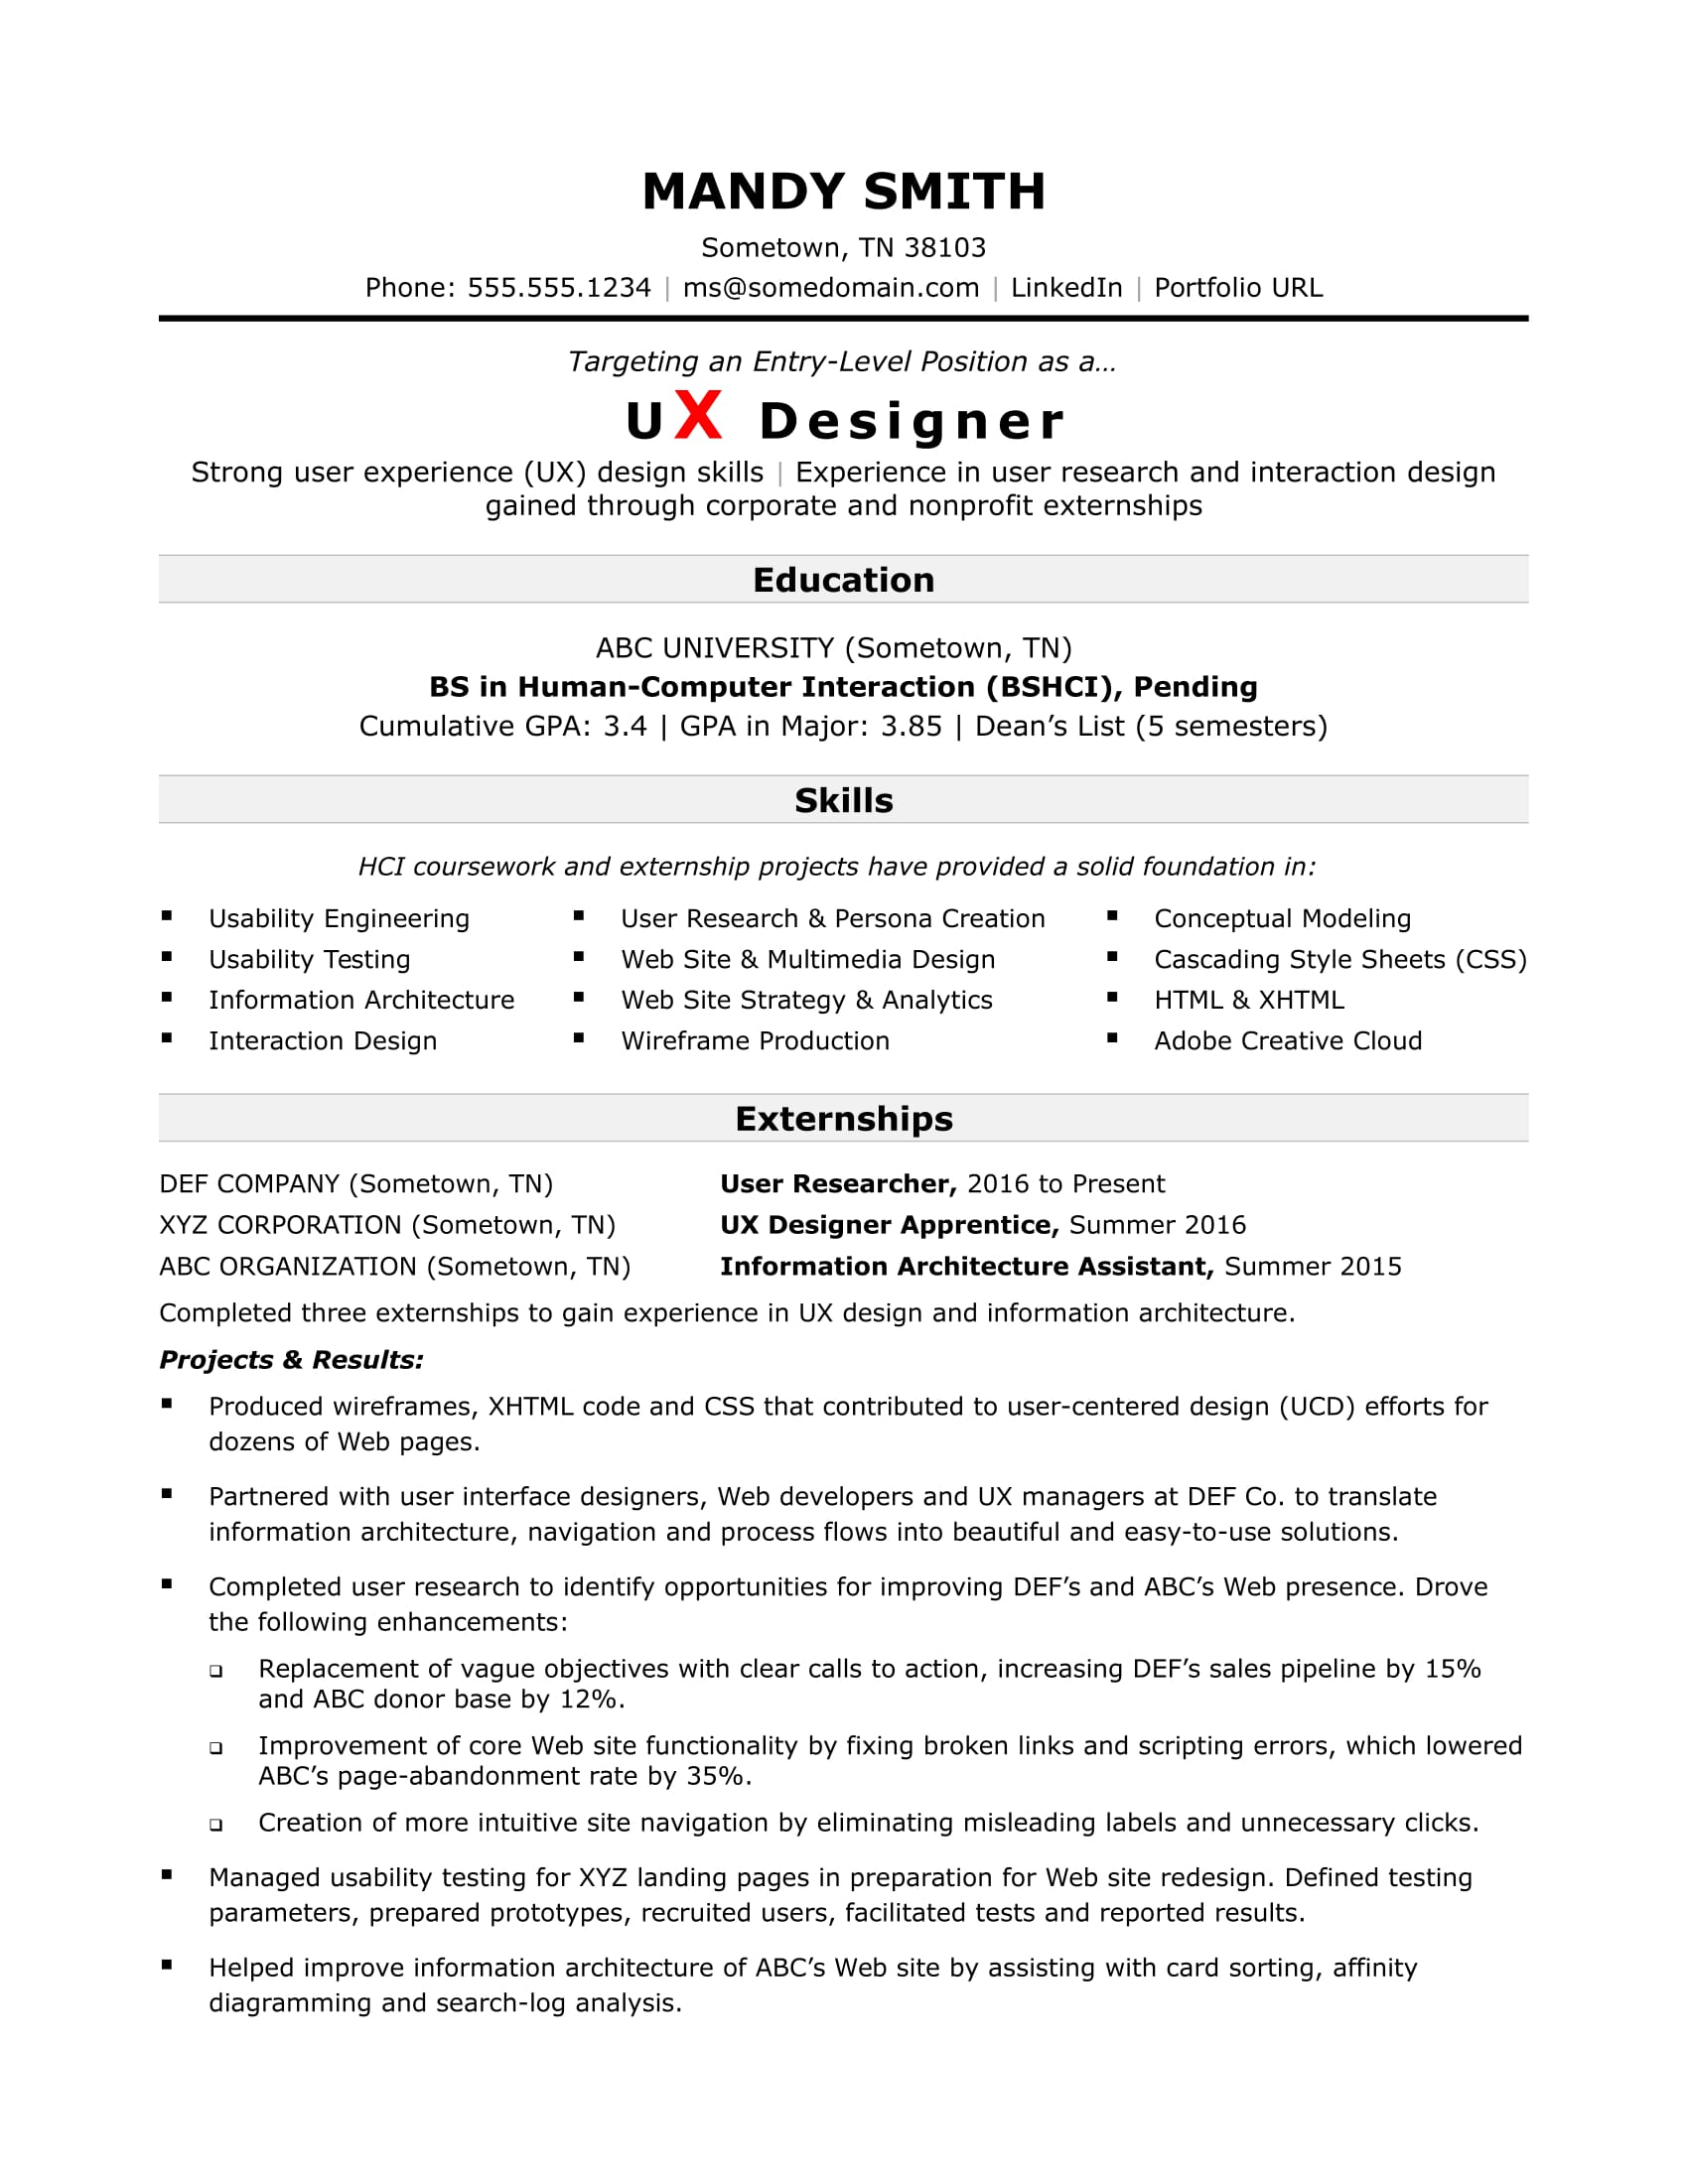 Sample Resume For An Entry Level Ux Designer Monster Com